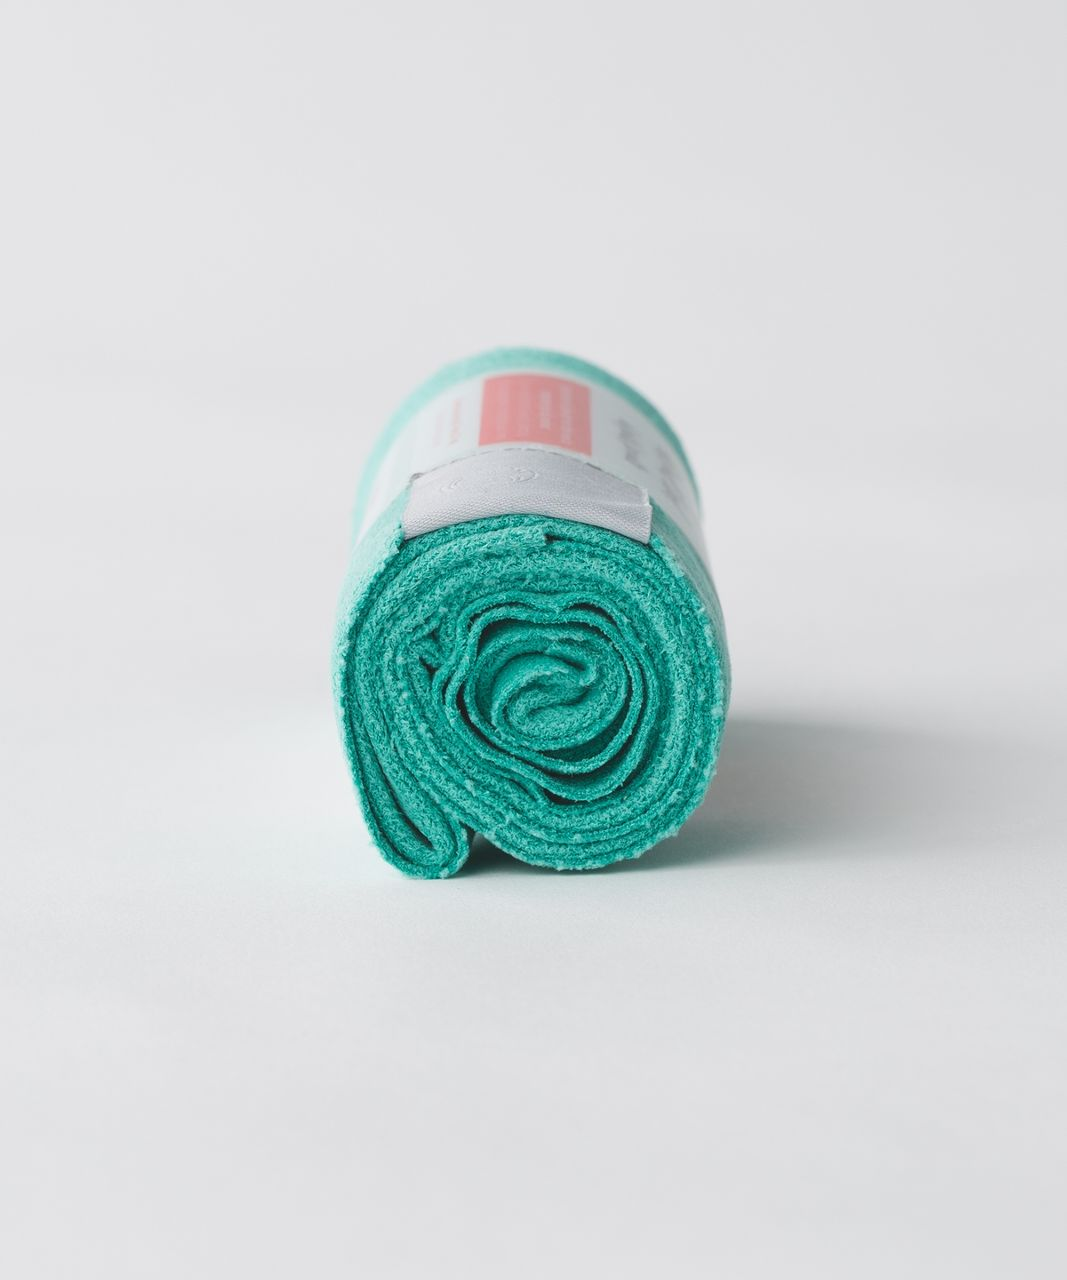 Lululemon The (Small) Towel - Bali Breeze